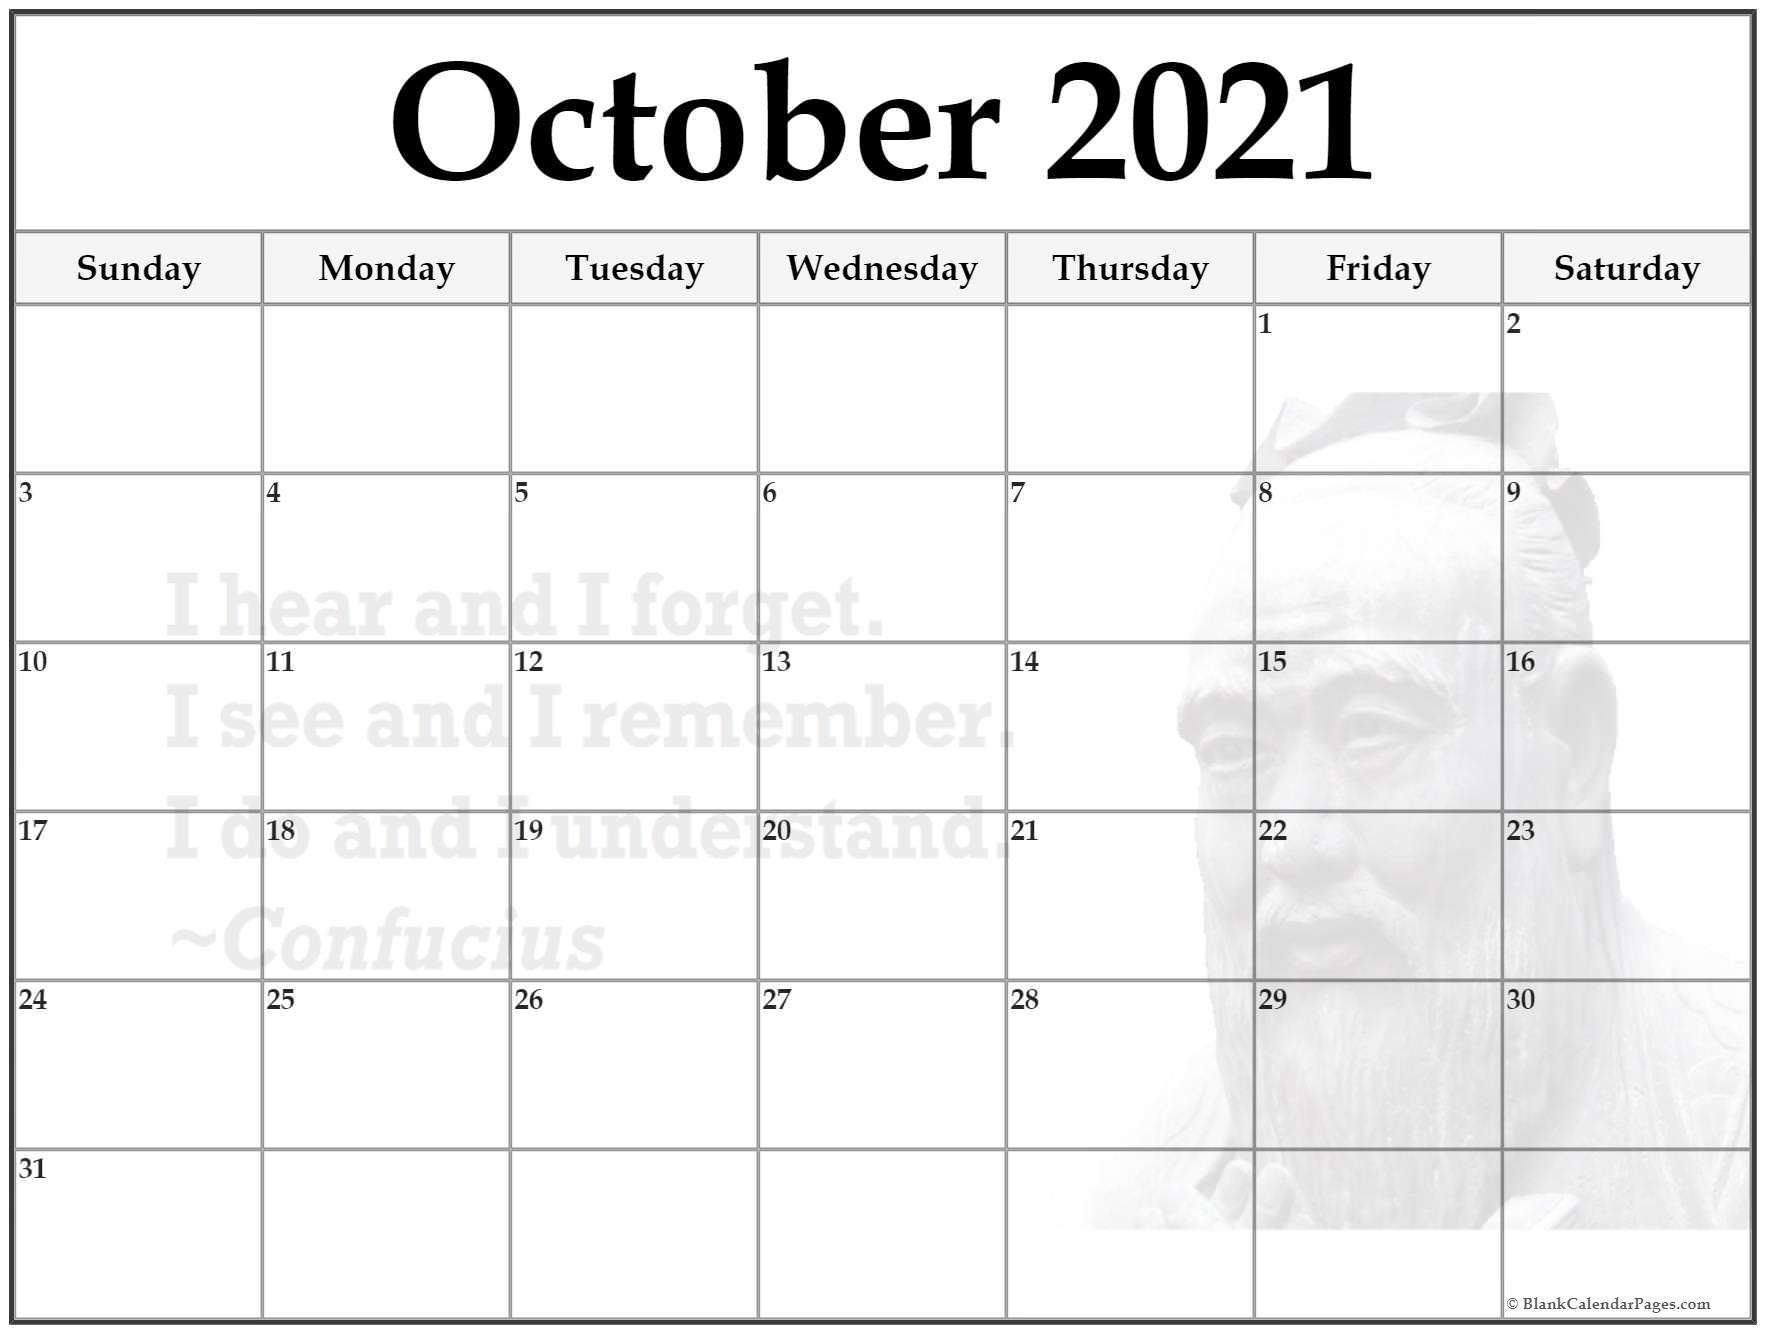 October 2020 confucius calendar. I hear and I forget.I see and I remember.I do and I understand.~Confucius